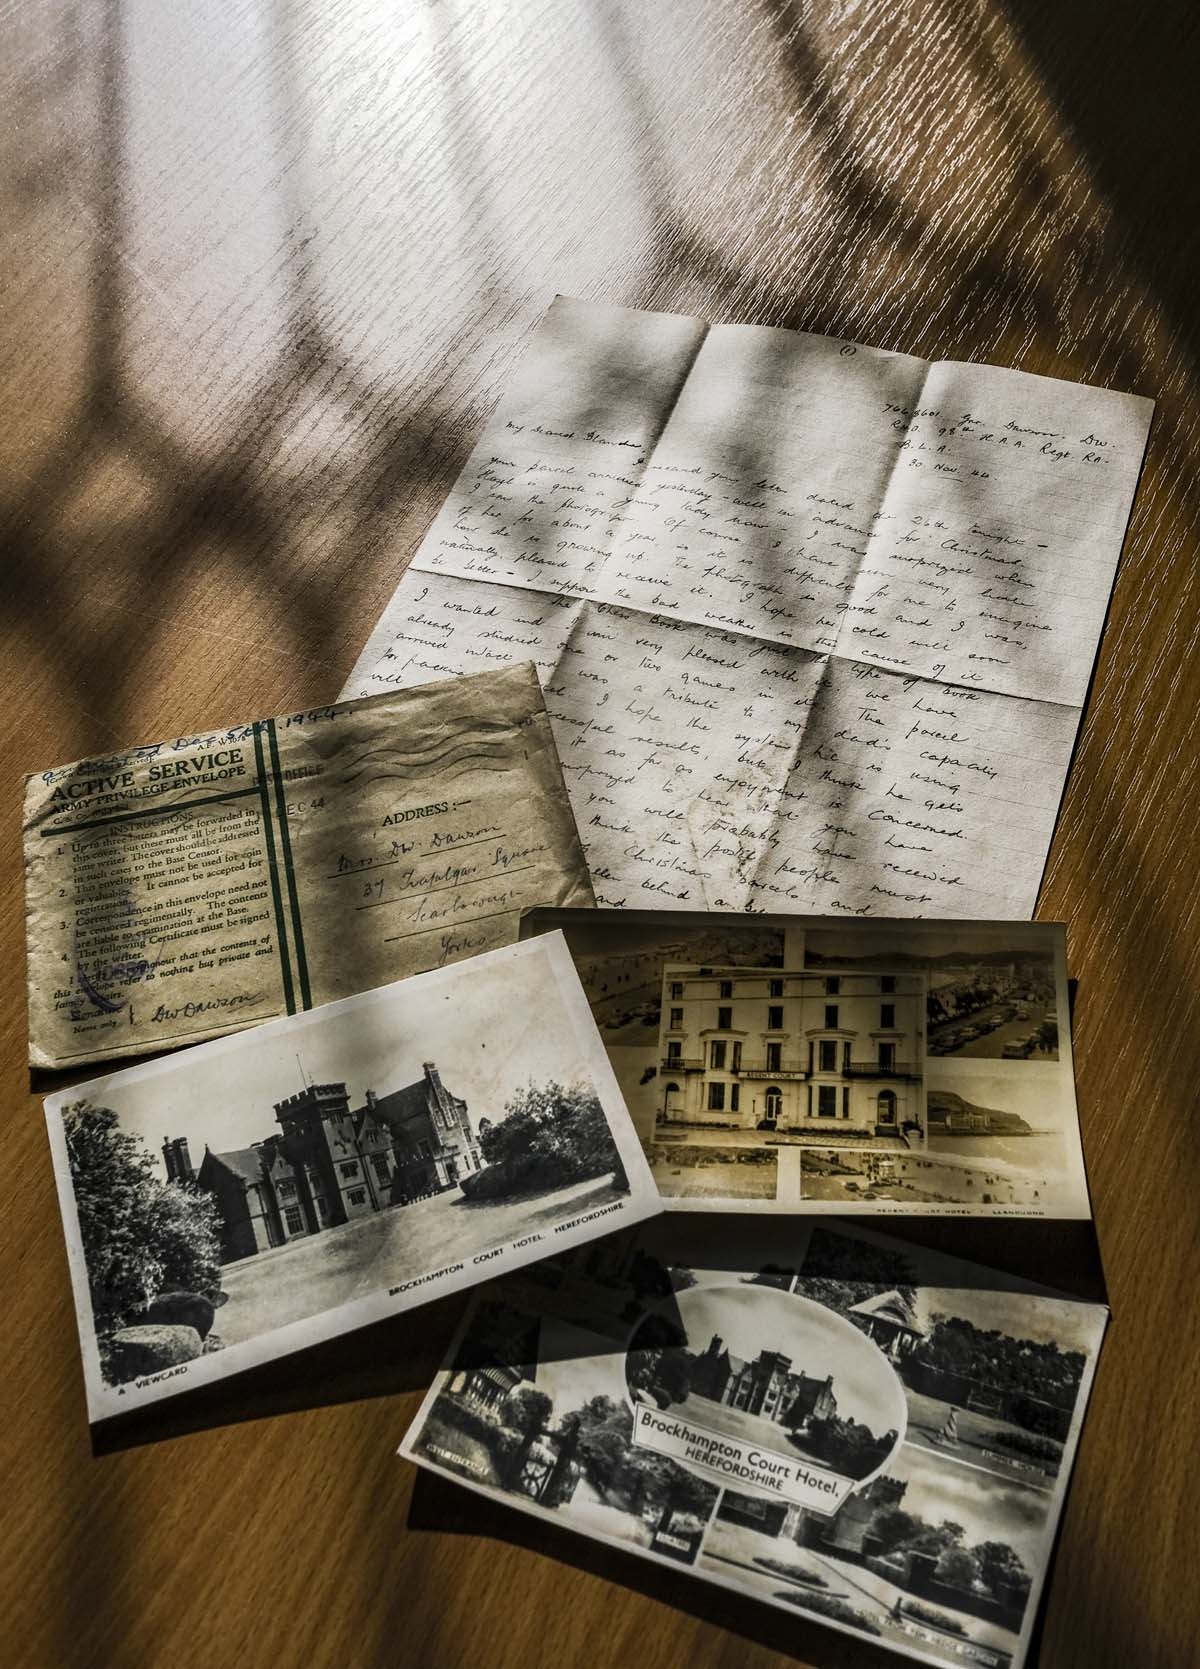 the collection of letters with postcards and photographs